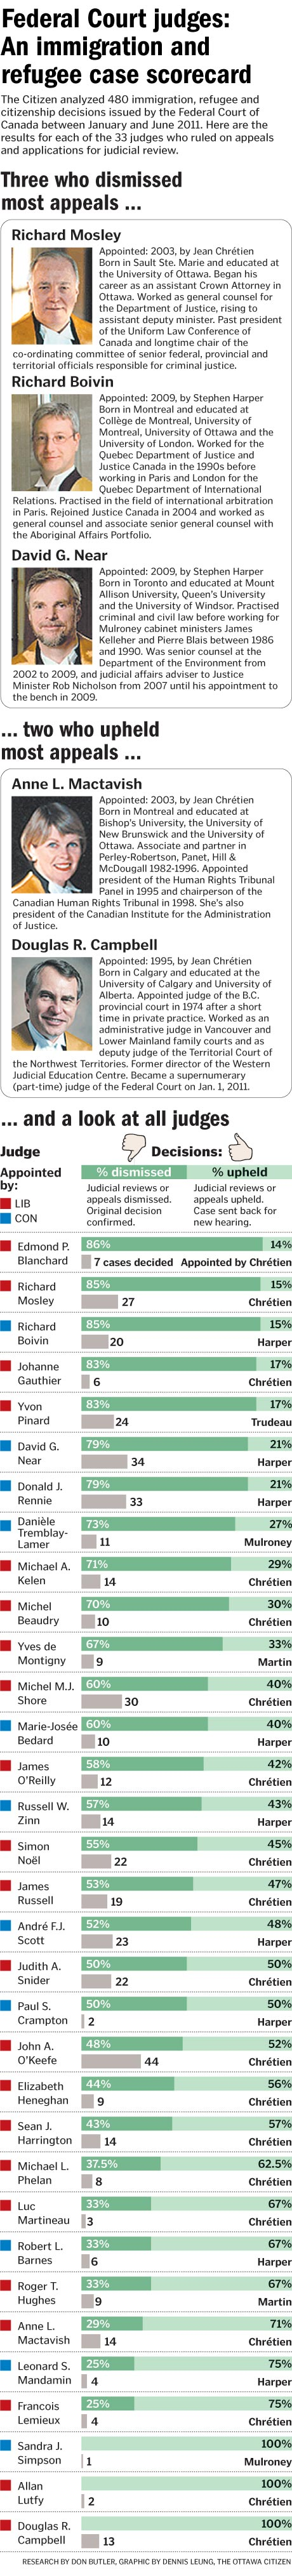 Tensions over Judicial Independence, Chart Shows Judicial Review Success Rates per Judge